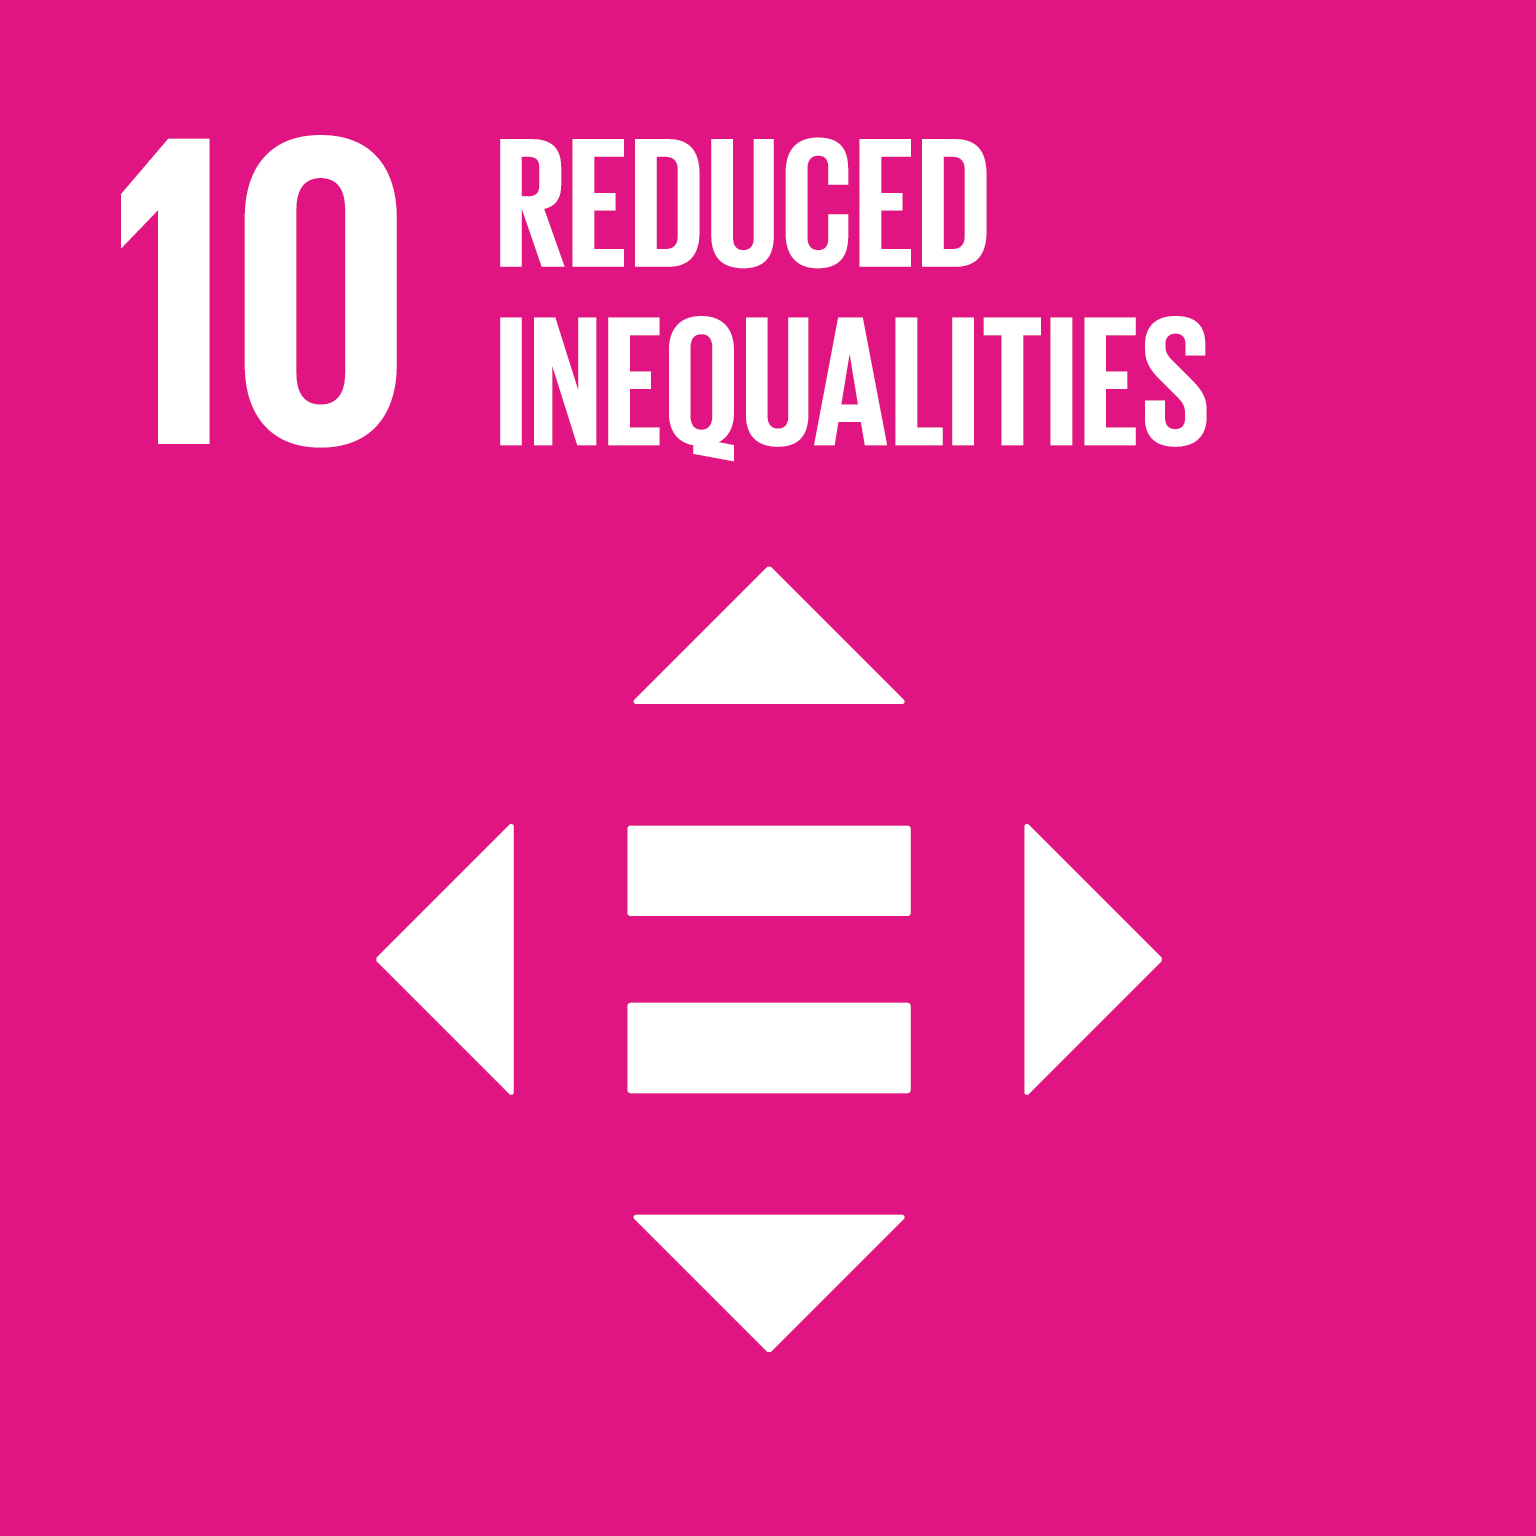 Sustainable Development Goal 10